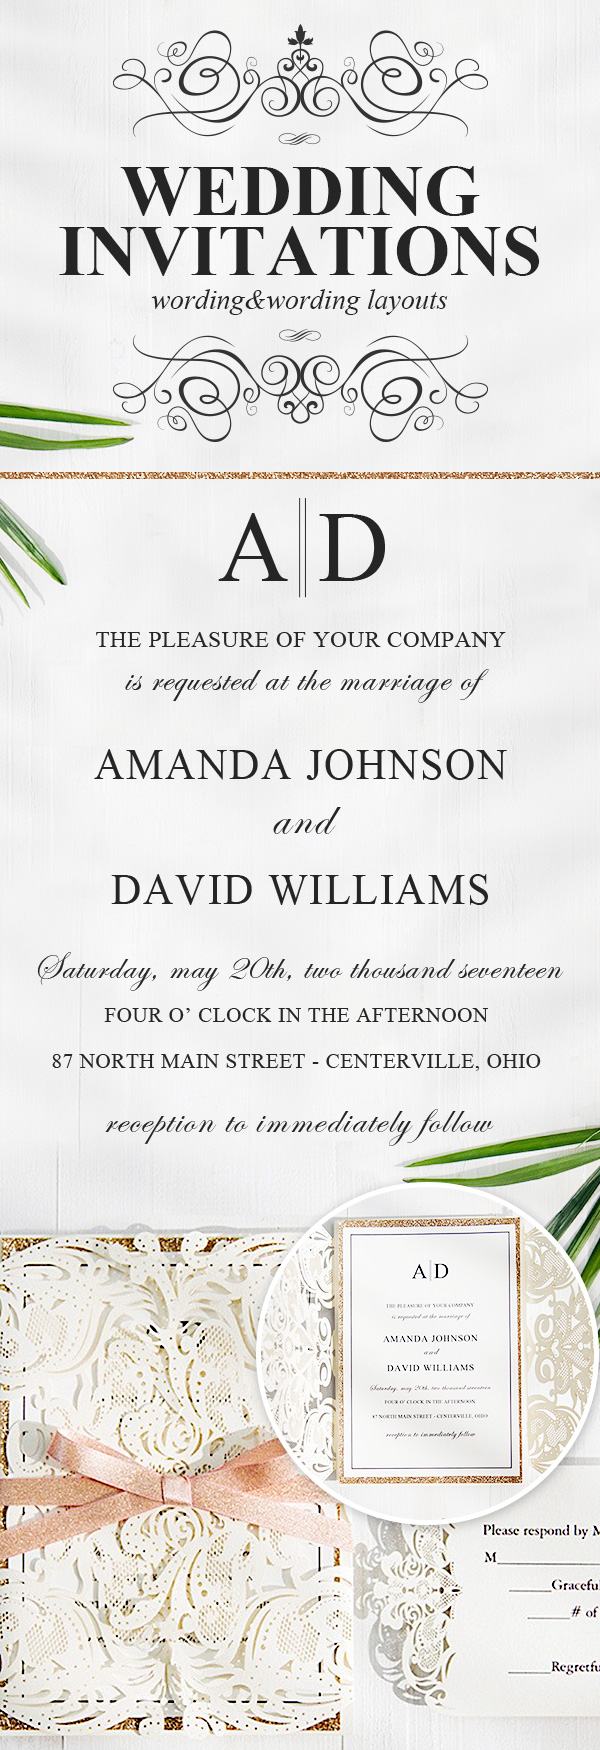 Customizing Options of the Wedding Invitations from Elegant Wedding Invites